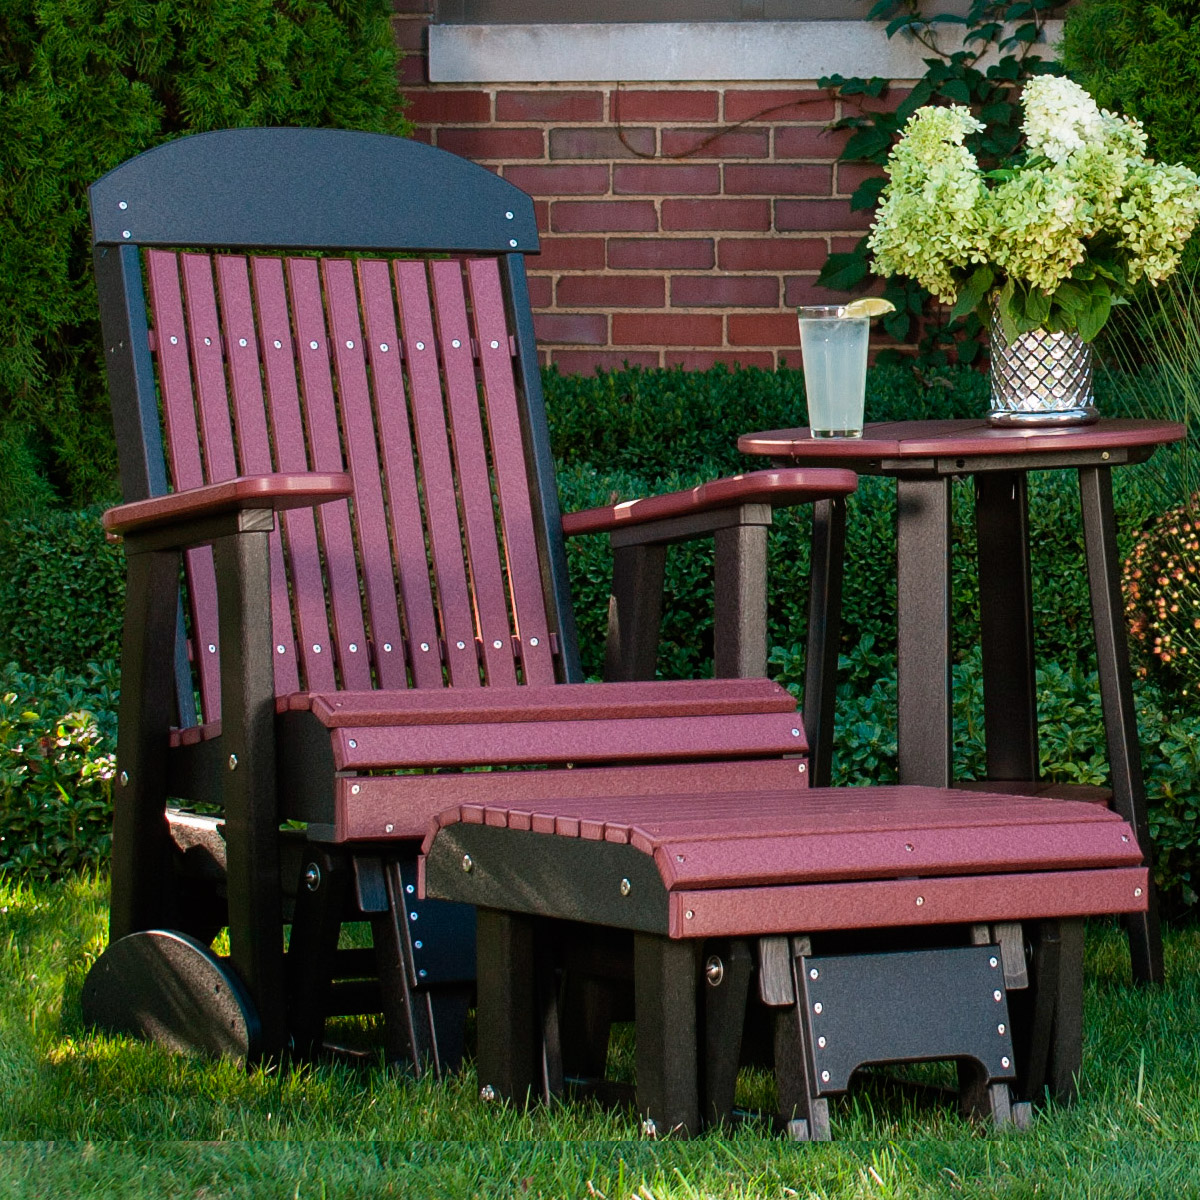 Amish outdoor glider grandin road outdoor furniture winnie chair grandin roa poly - Luxcraft fine outdoor furniture ...